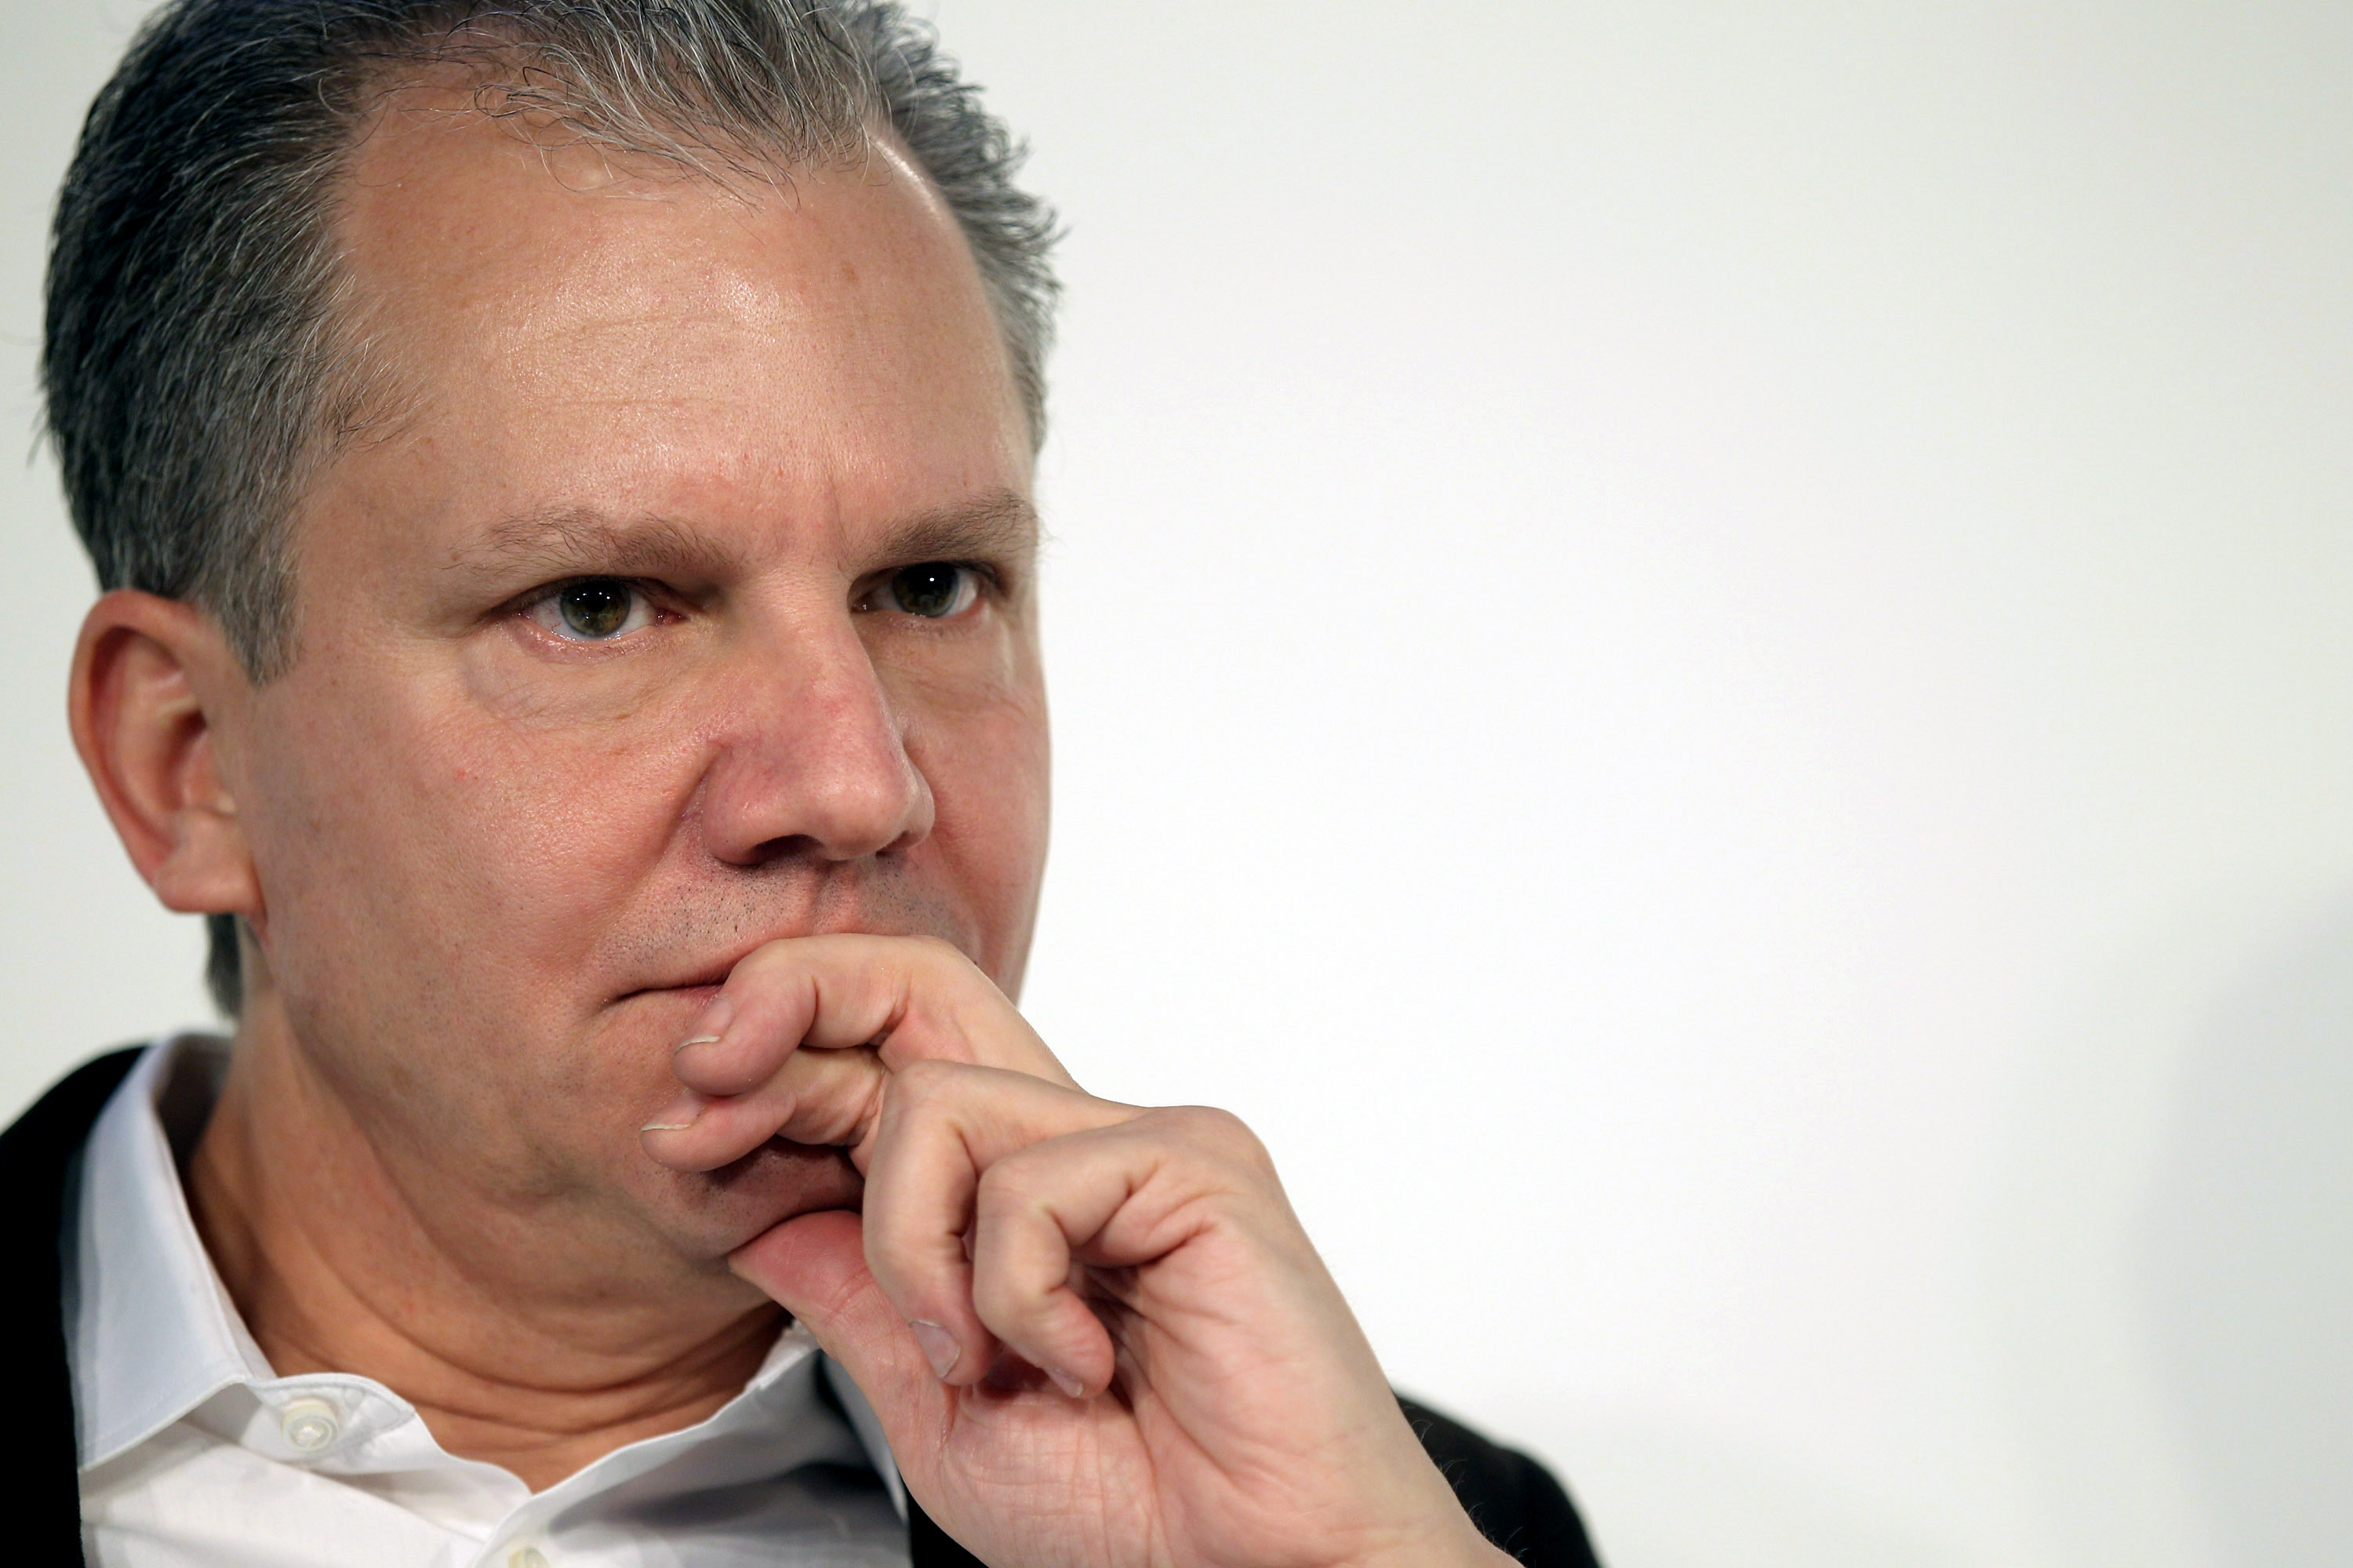 Arthur Sulzberger, chairman and publisher of The New York Times, looks on during the Digital Life Design (DLD) conference at HVB Forum on January 23, 2011 in Munich, Germany.